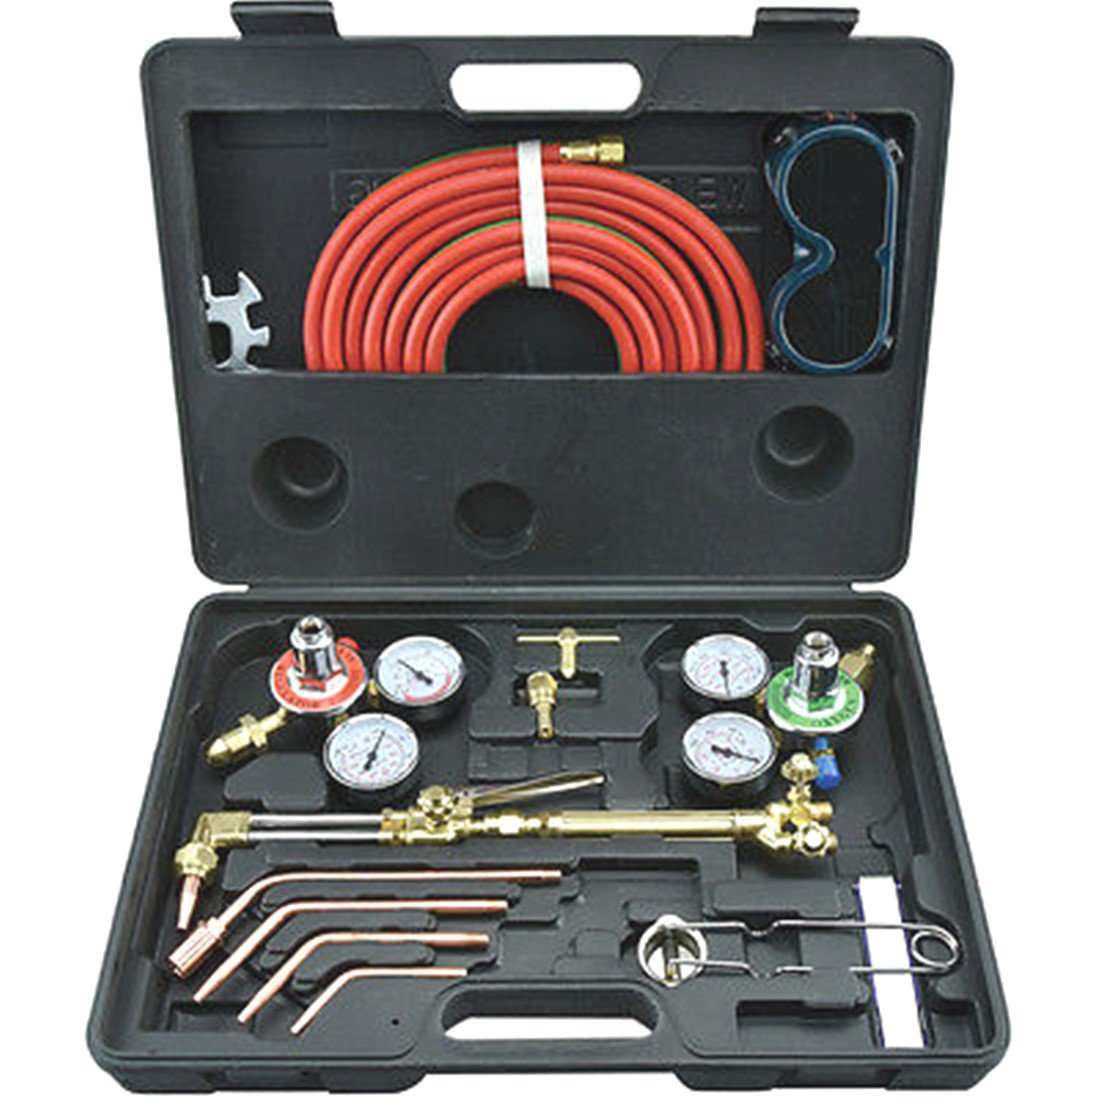 Gas Welding and Cutting Kit Portable Acetylene Oxygen Torch Set Welder Regulator by Generic